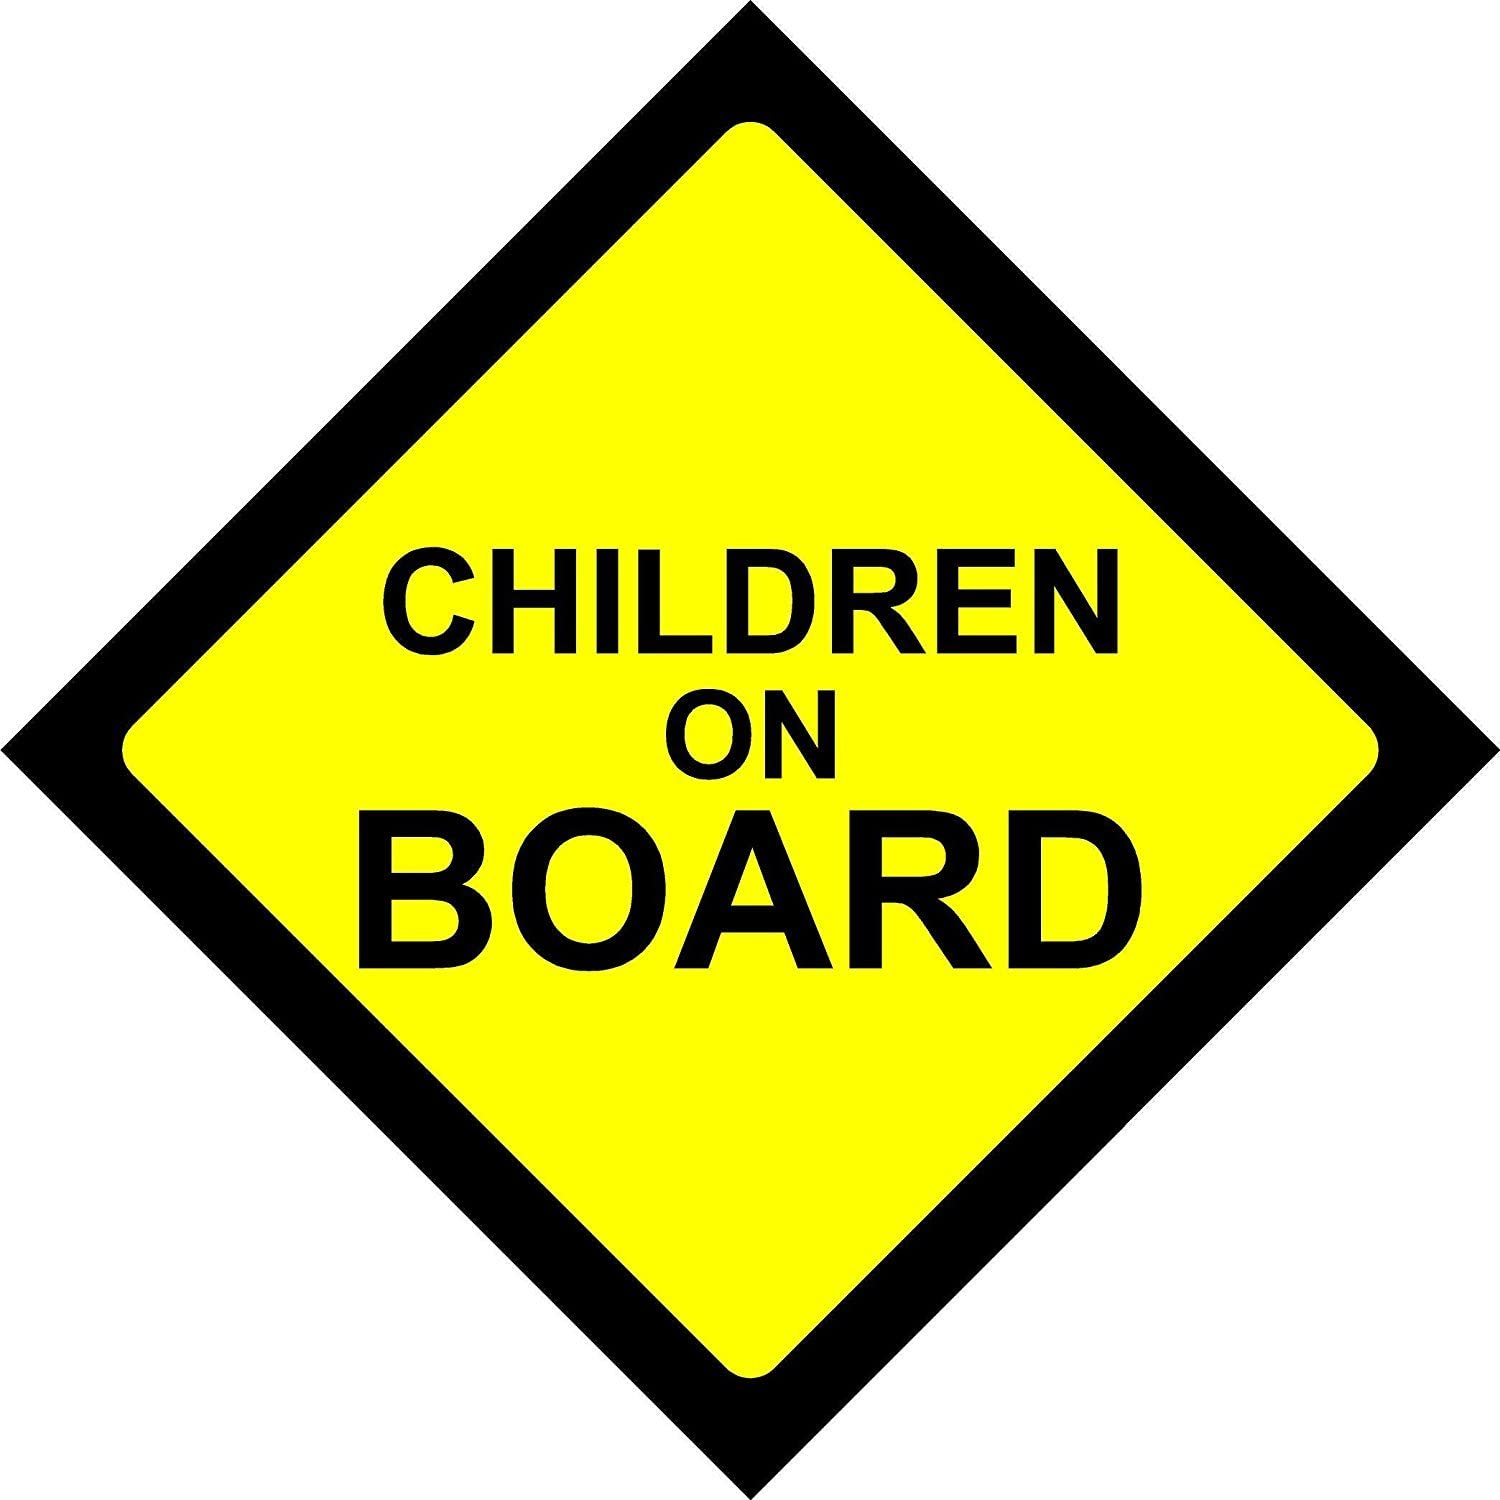 KIDS ON BOARD WARNING SAFETY SIGN Sticker Vinyl Decal for car vehicle window